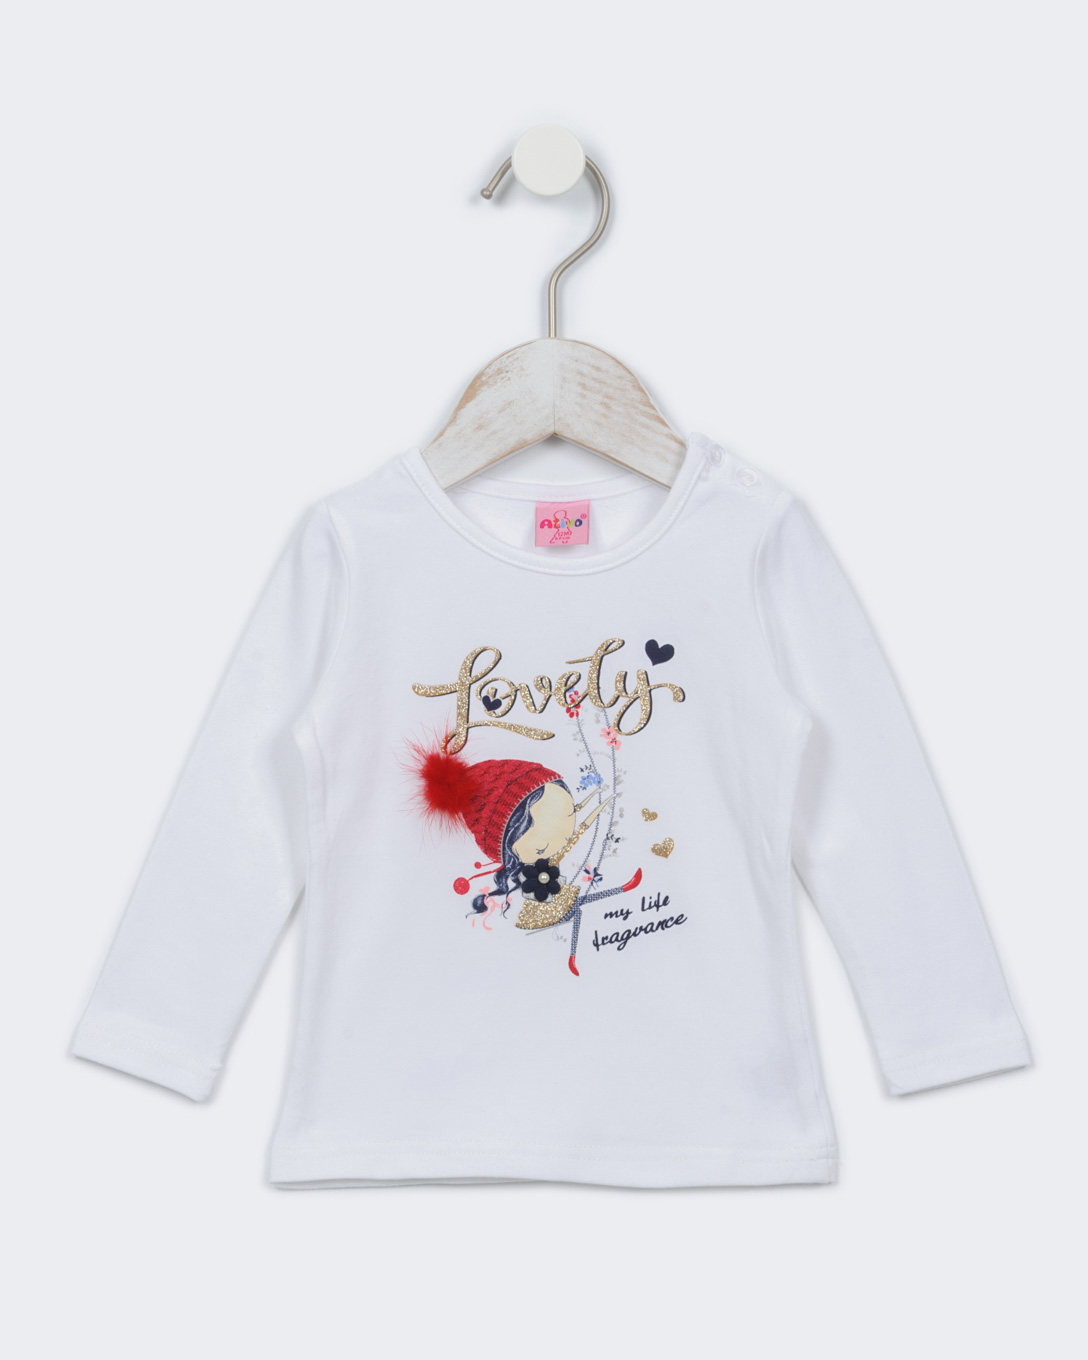 Ativo - T-shirt Lovely